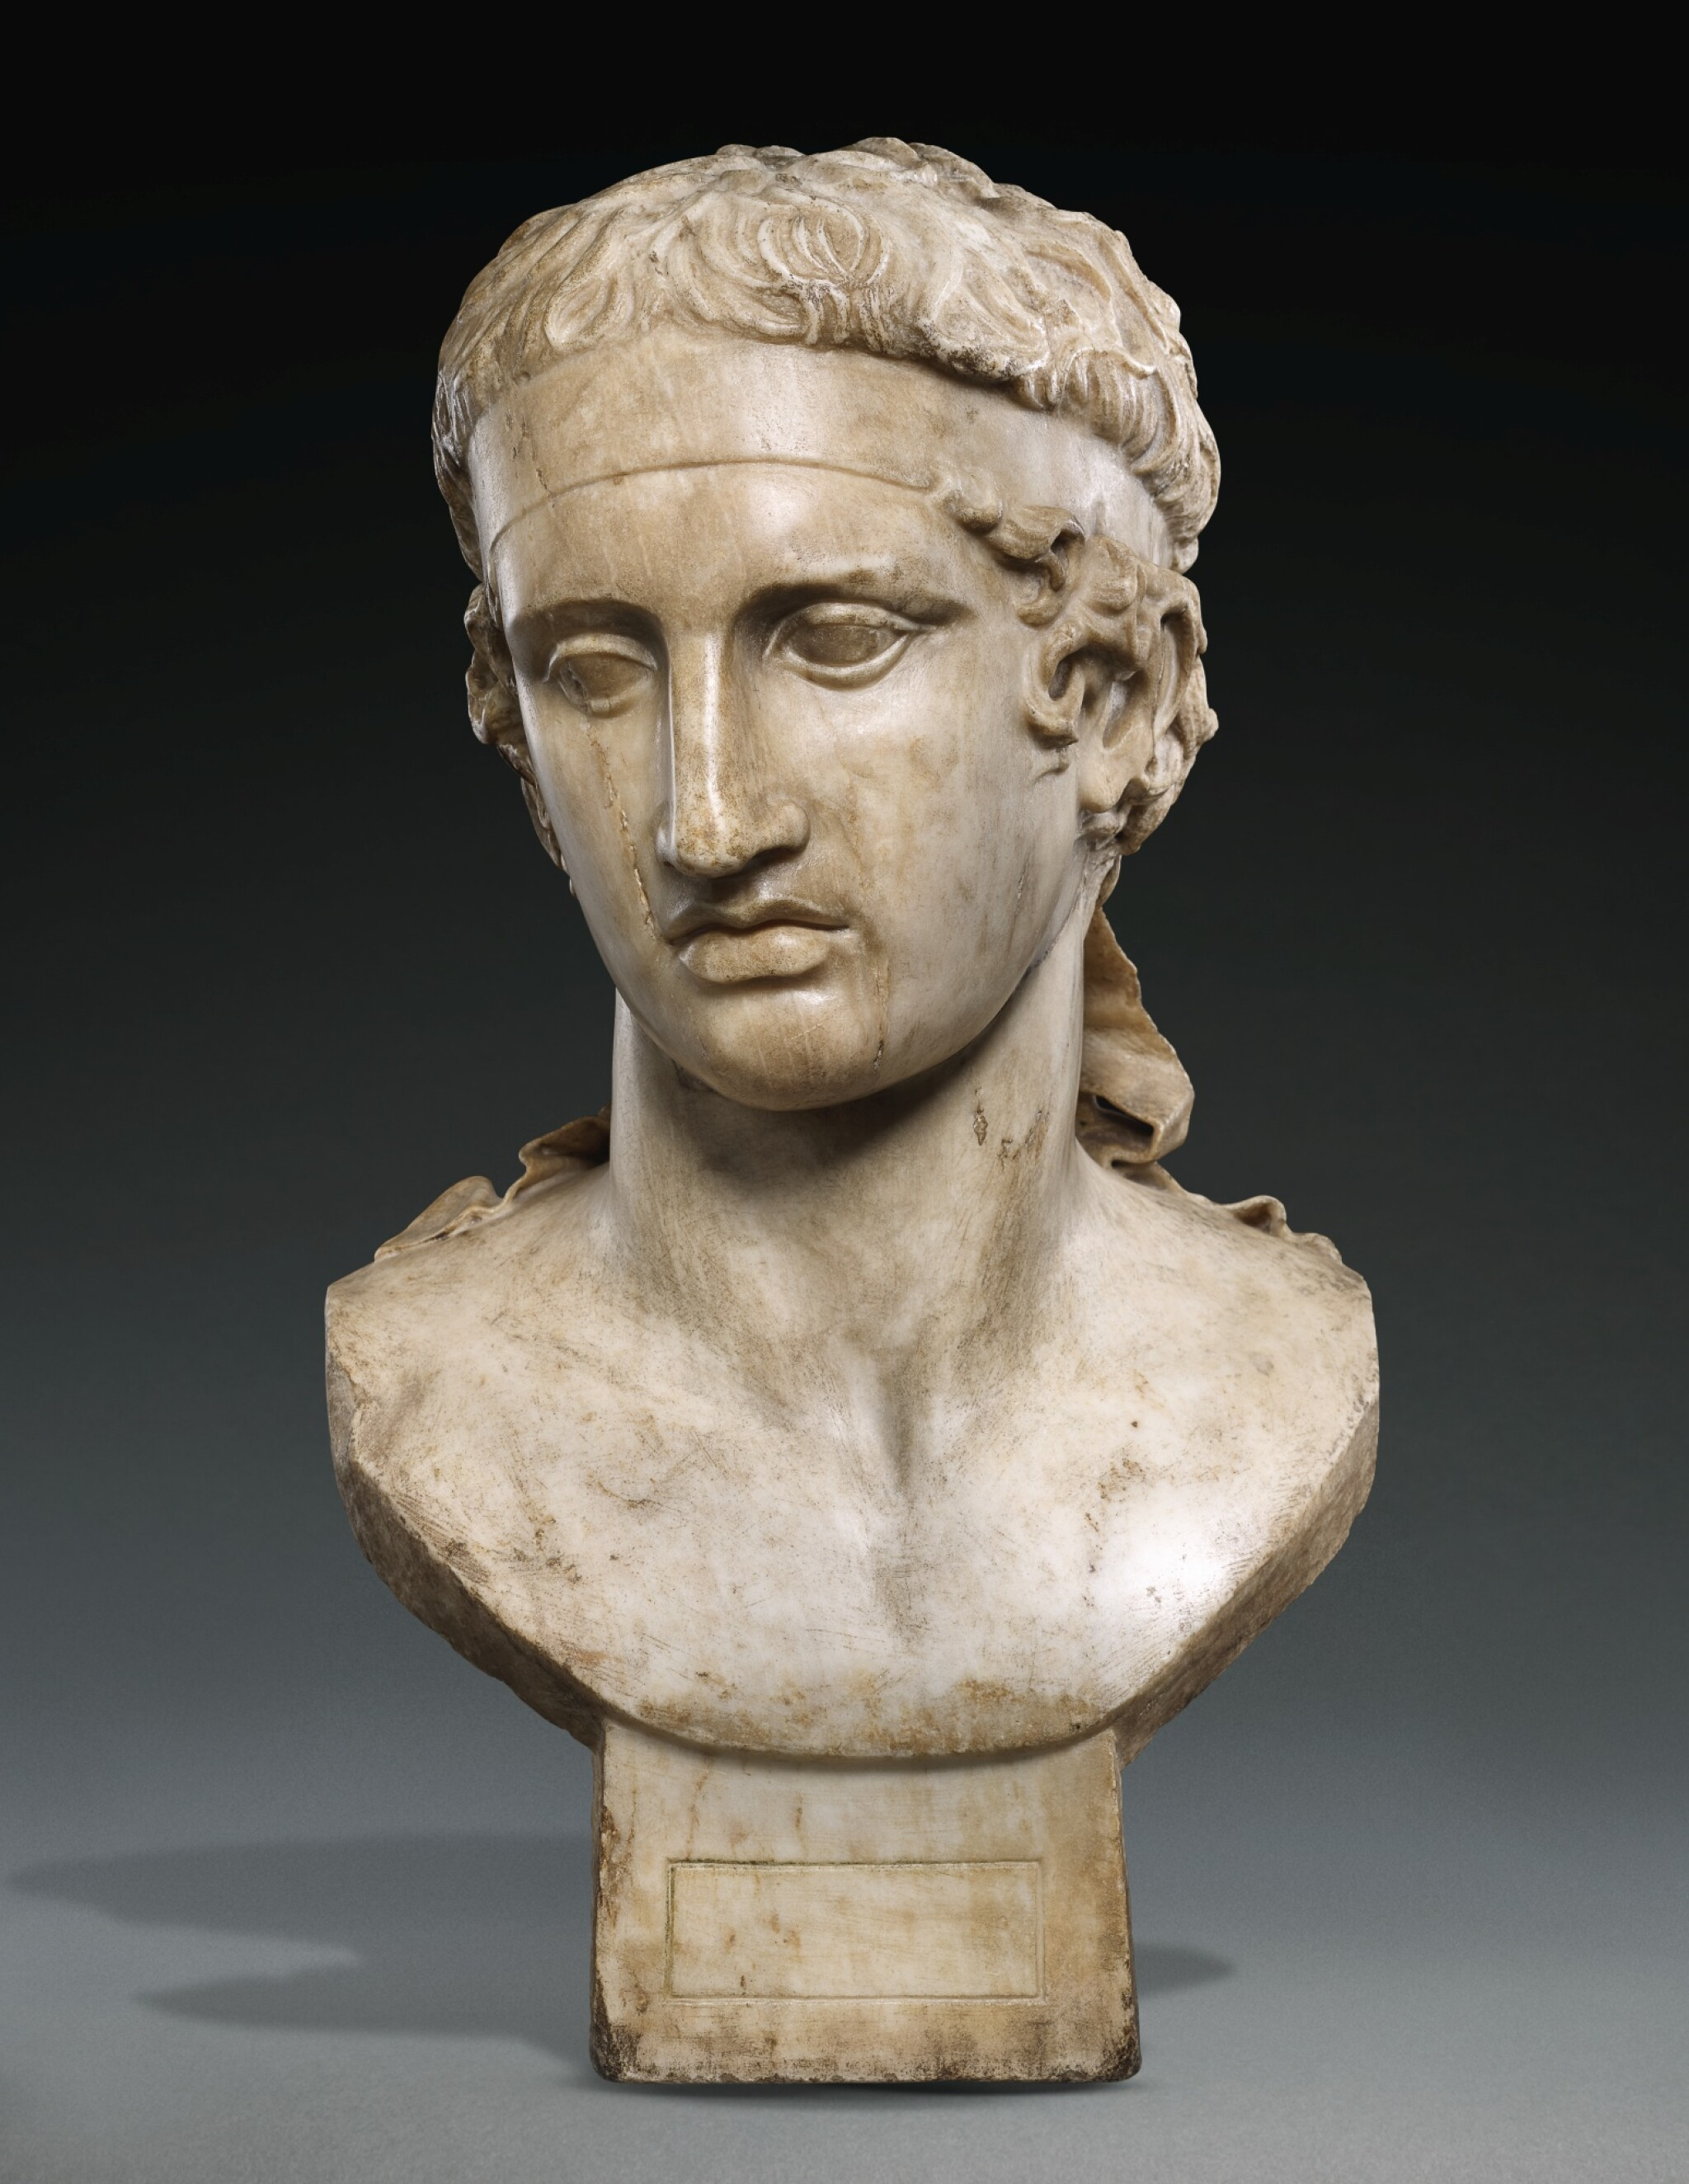 View full screen - View 1 of Lot 27. A FRAGMENTARY ROMAN MARBLE HEAD OF THE DIADUMENOS, CIRCA 2ND CENTURY A.D., WITH MID 17TH CENTURY OR EARLIER RESTORATIONS.